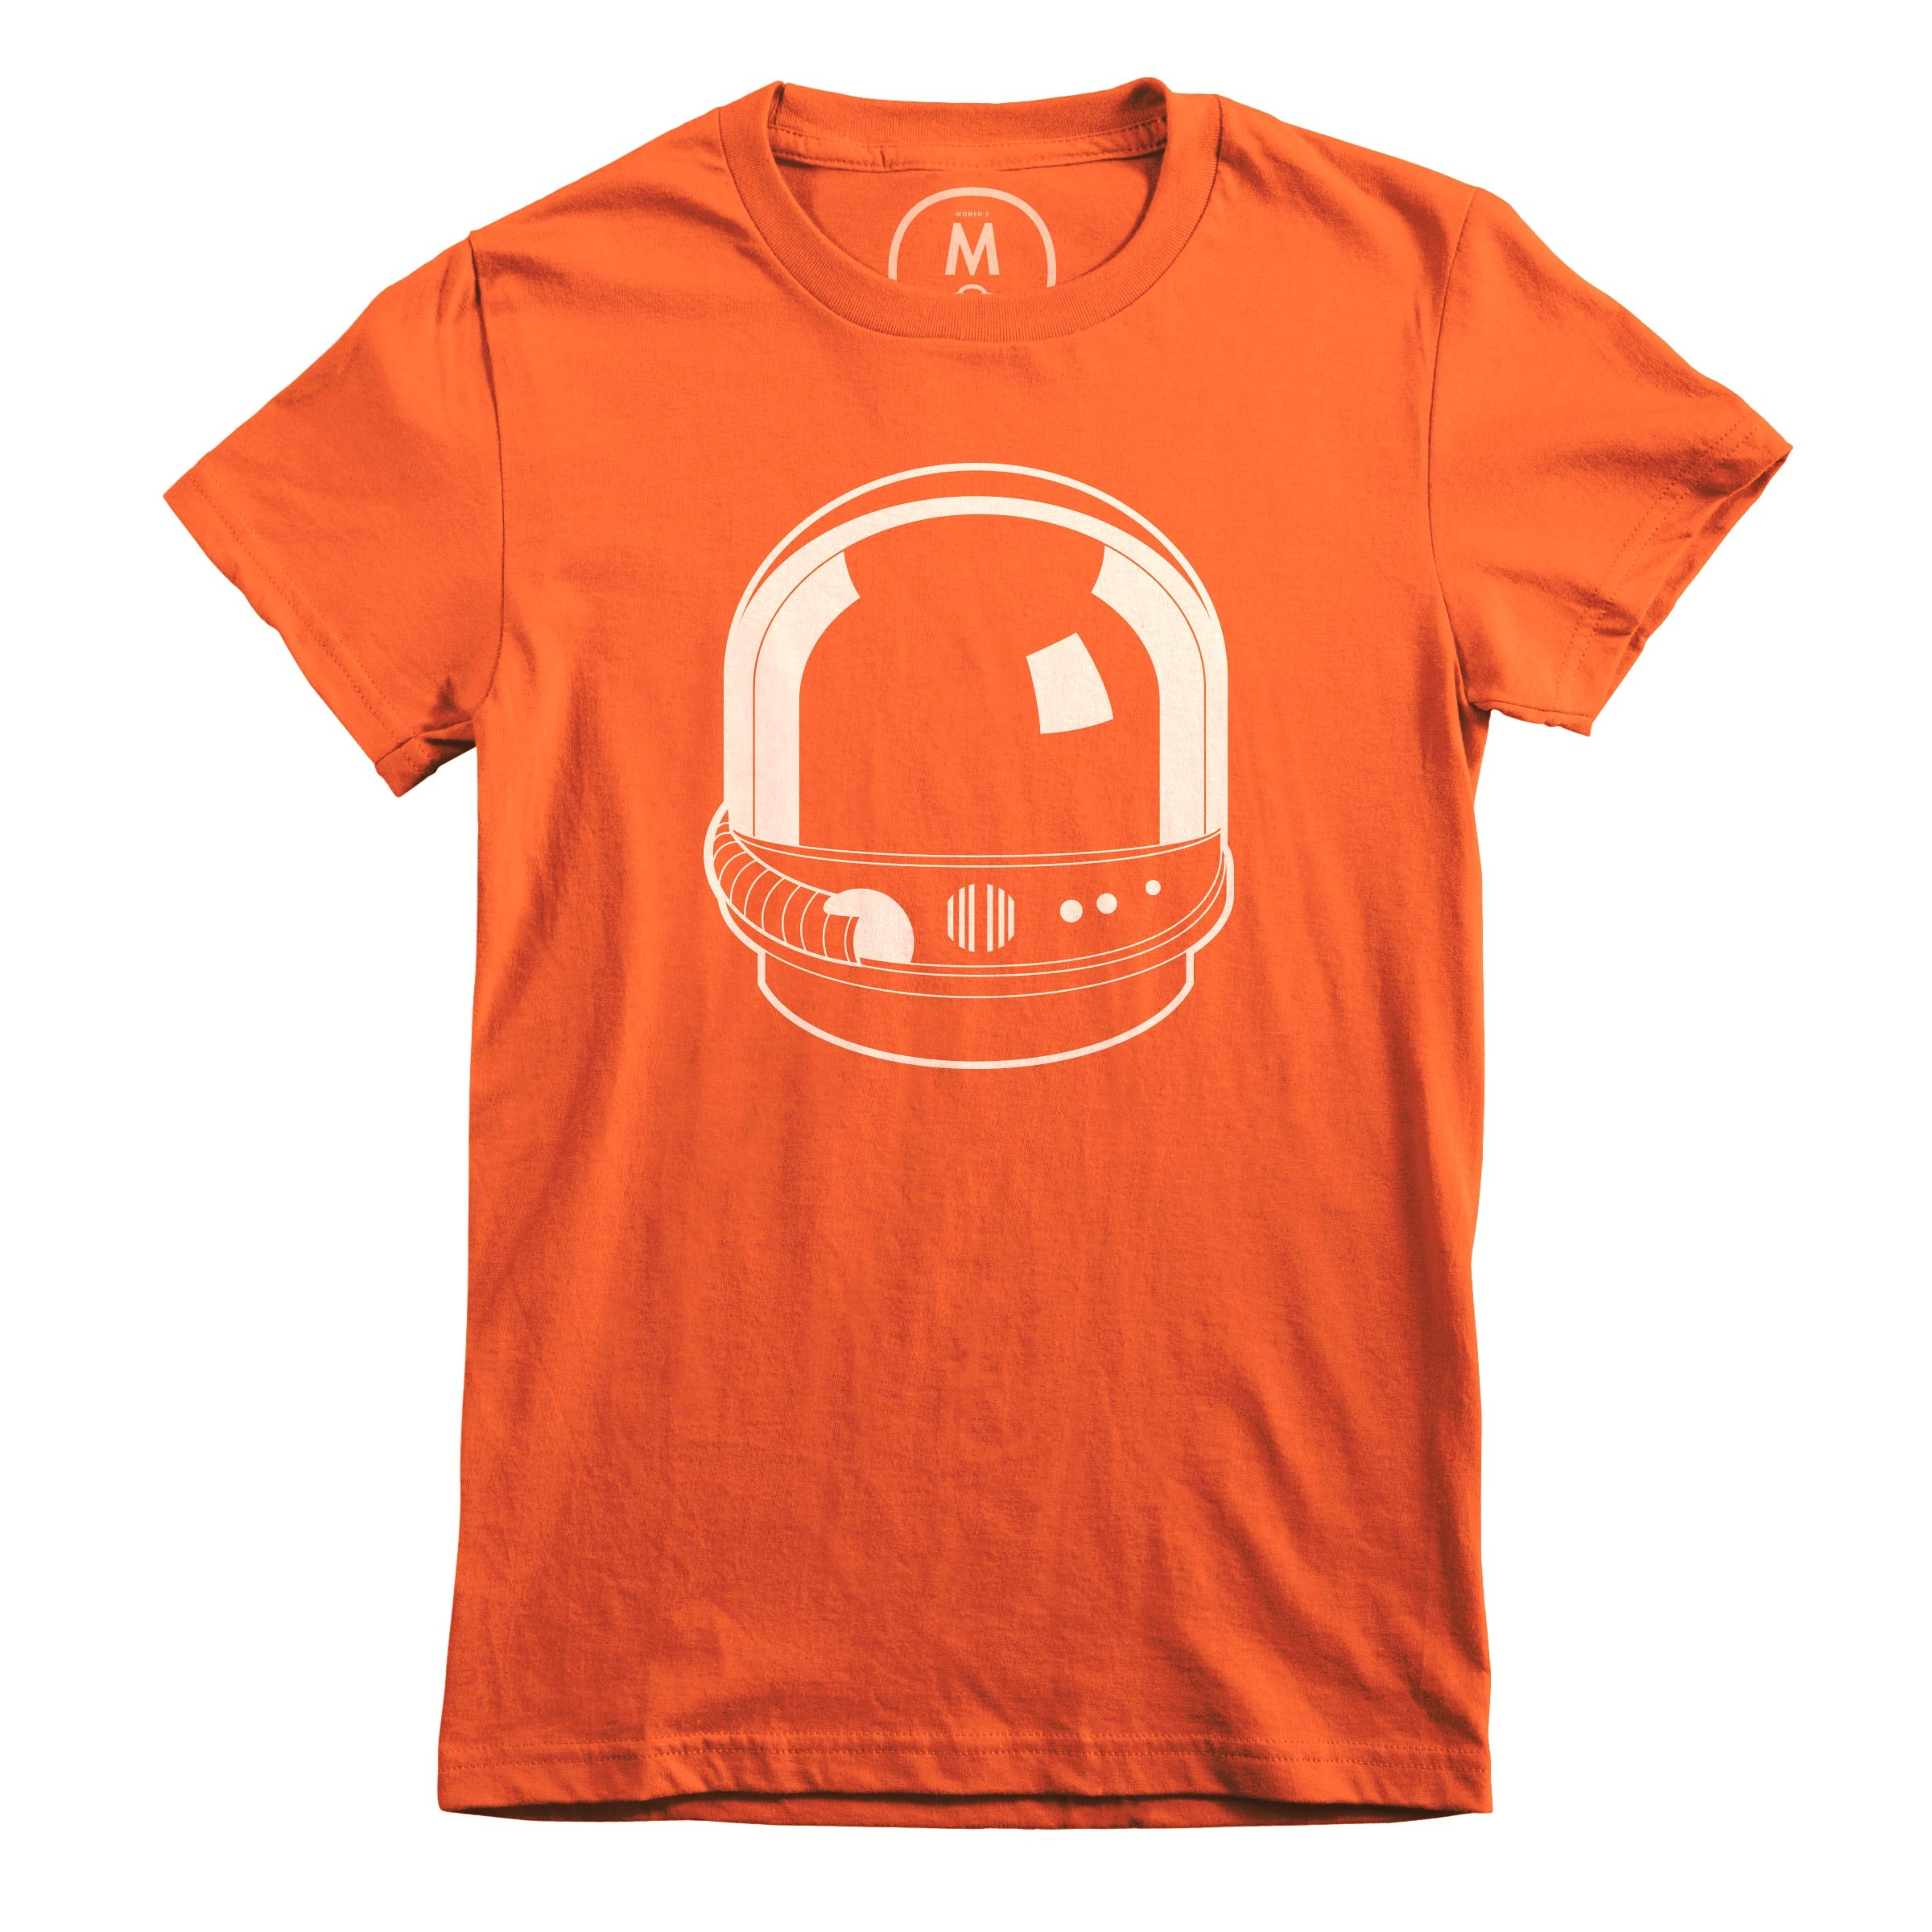 Future Friendly (Red) Orange (Women's)